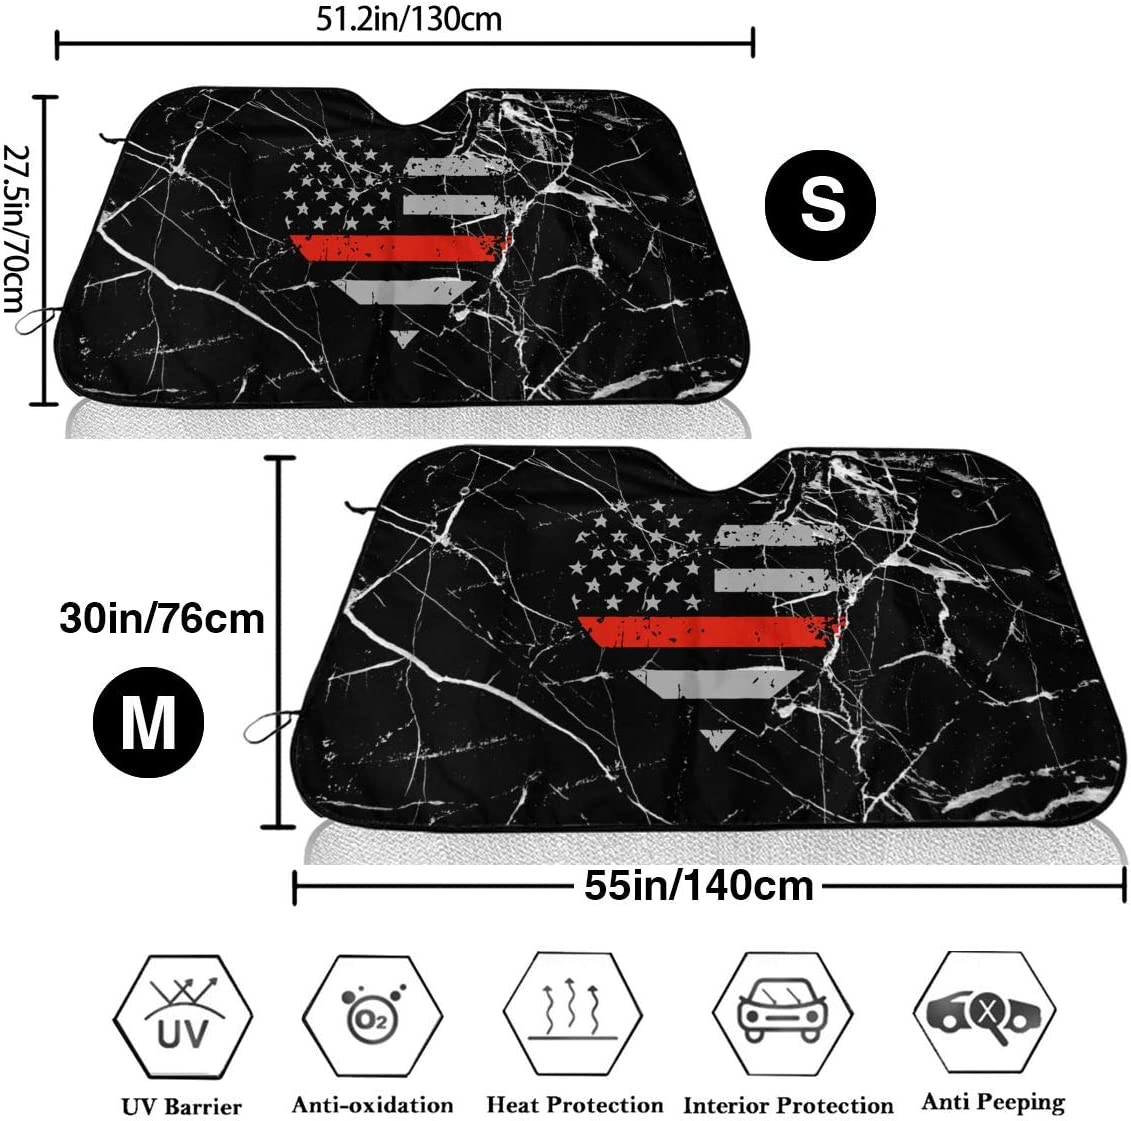 BAG9S-G1 Thin Red Line Heart Flag Firefighter Wife Front Car Sunshade Windshield Foldable Sunshade for Car SUV Trucks Minivans Sunshades Keeps Vehicle Cool